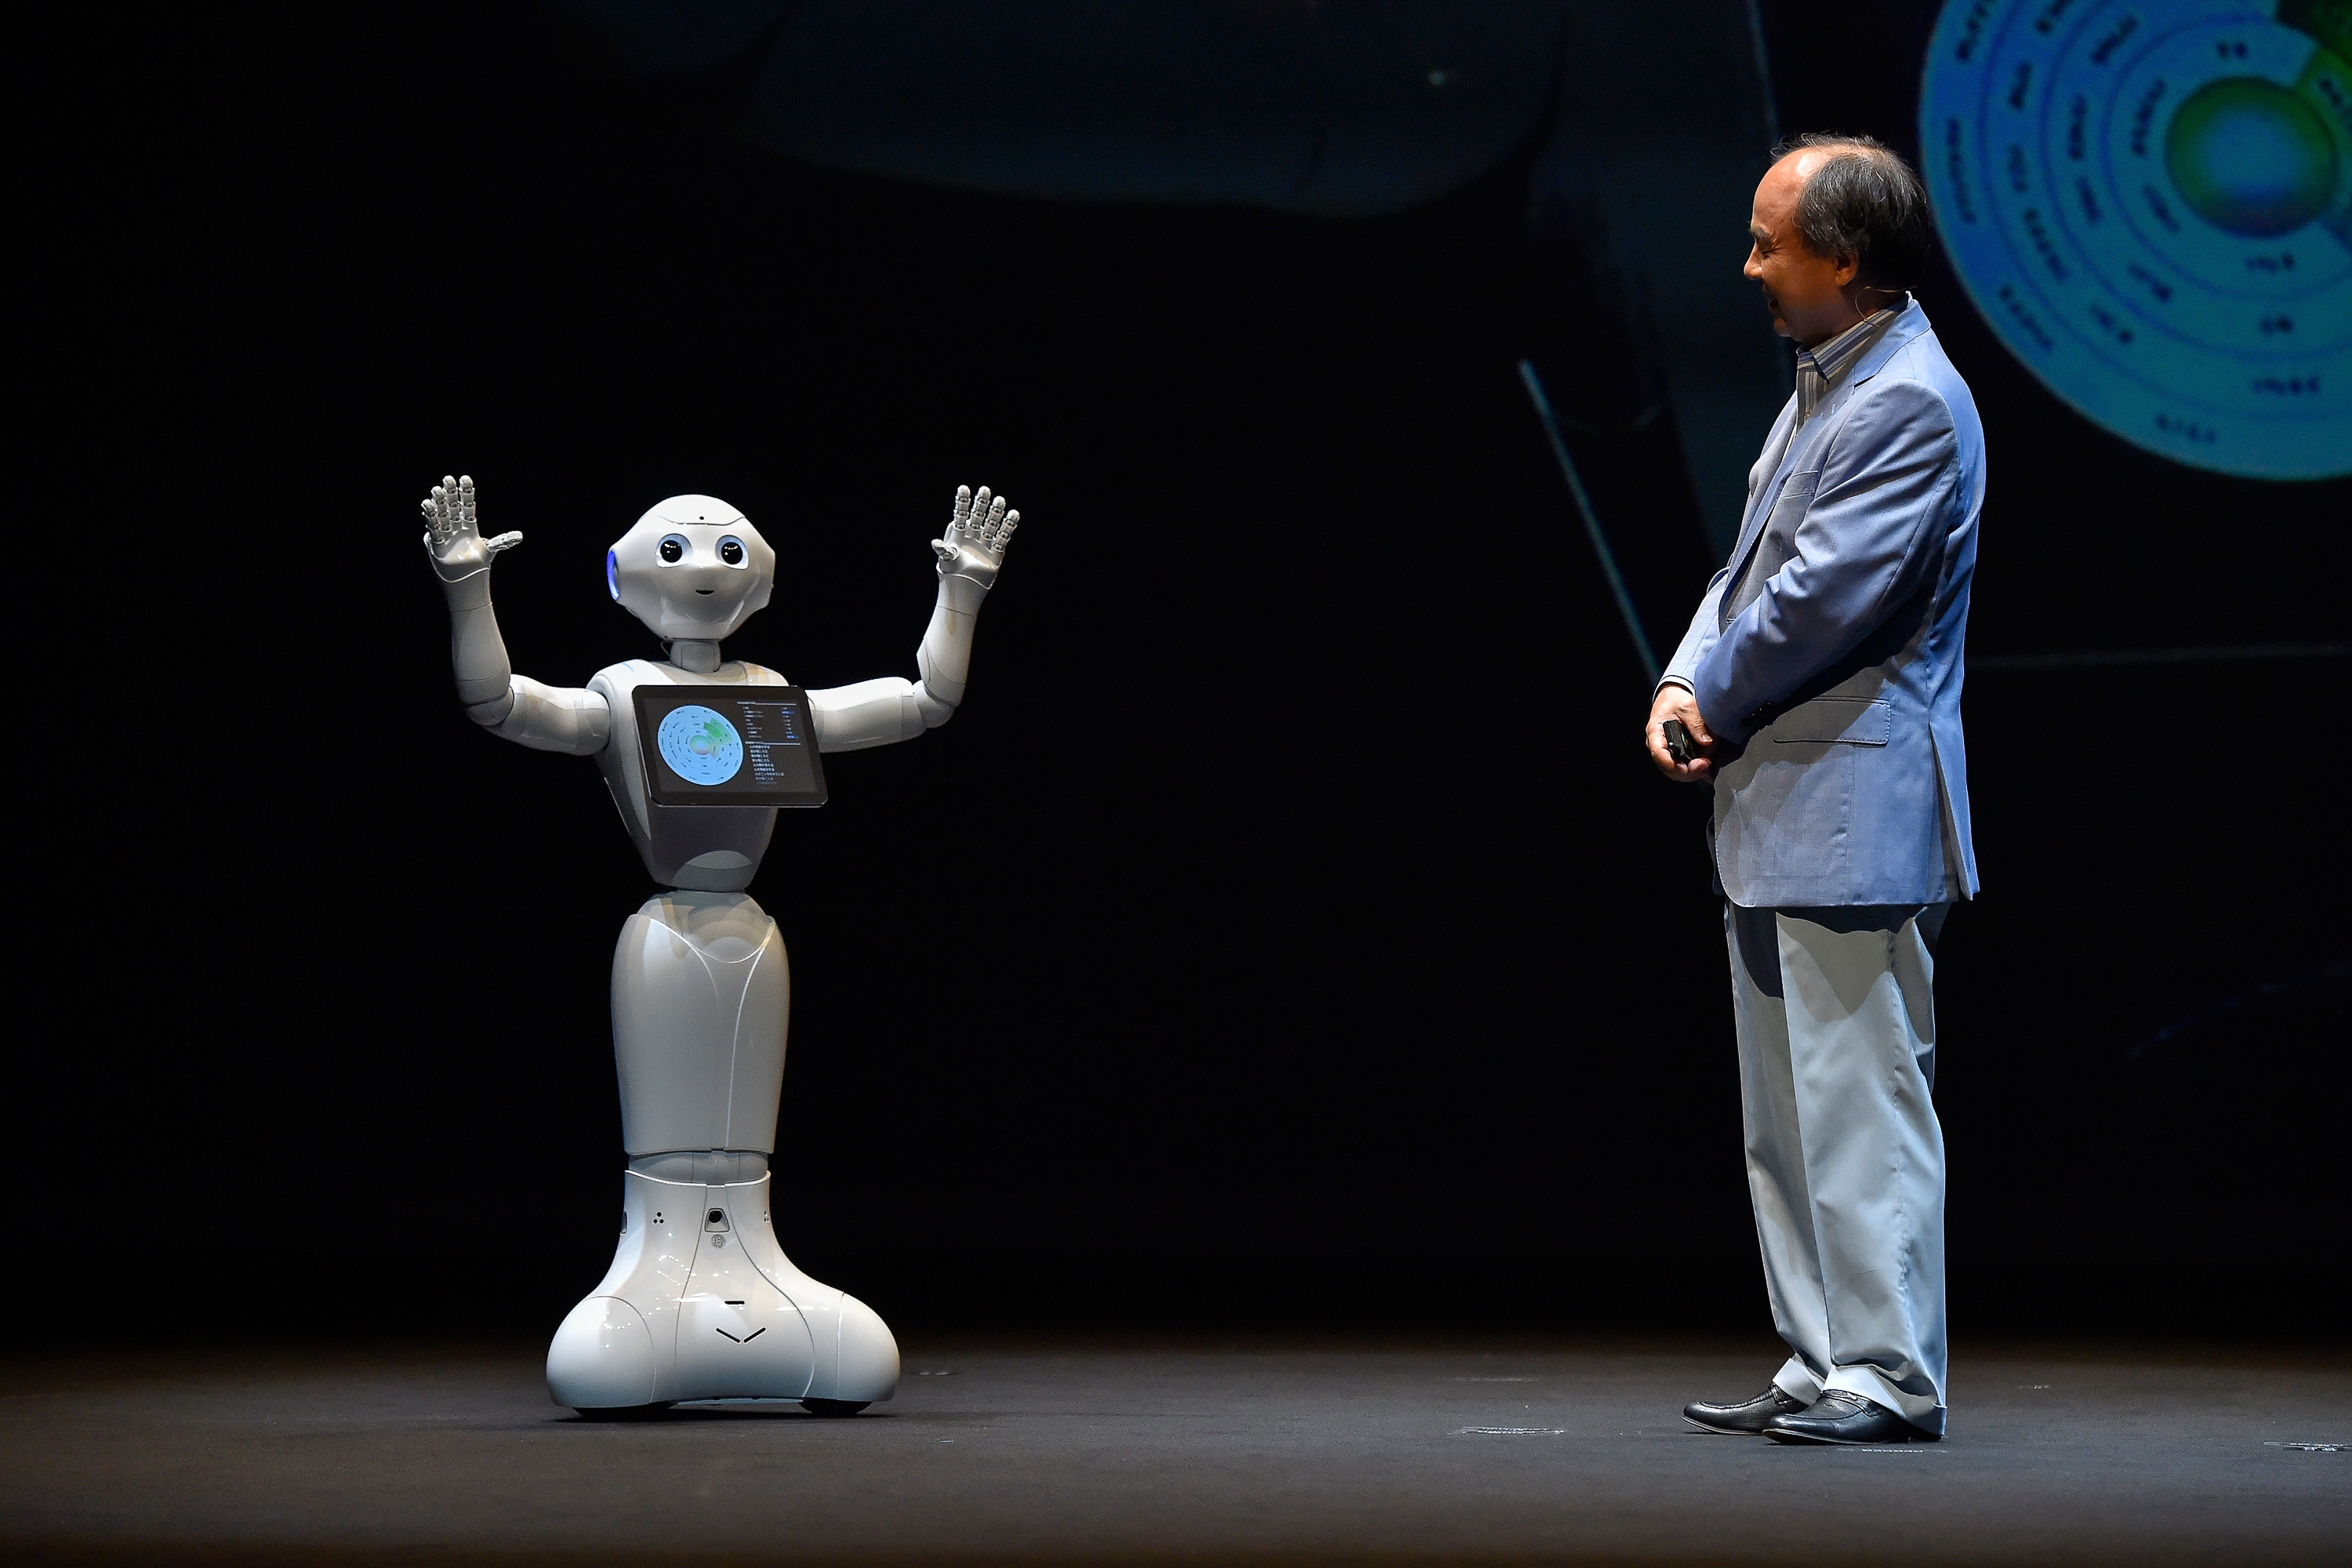 SoftBank CEO Masa Son onstage with Pepper the humanoid robot assistant.